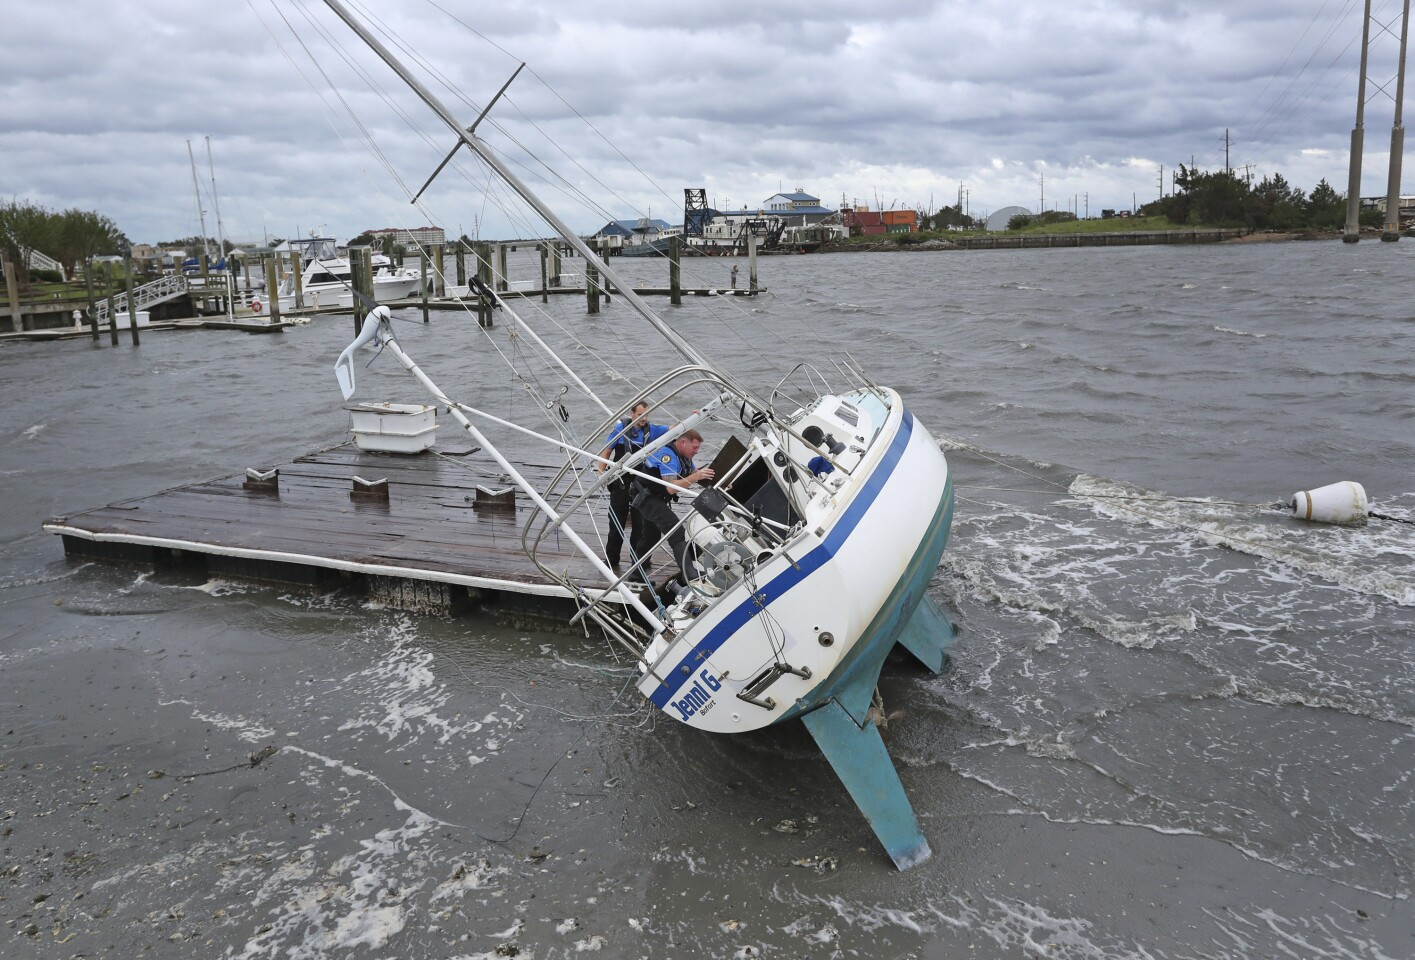 Beaufort Police Officer Curtis Resor, left, and Sgt. Micheal Stepehens check a sailboat for occupants in Beaufort, N.C. after Hurricane Dorian passed the North Carolina coast on Friday, Sept. 6, 2019. Dorian howled over North Carolina's Outer Banks on Friday — a much weaker but still dangerous version of the storm that wreaked havoc in the Bahamas — flooding homes in the low-lying ribbon of islands and throwing a scare into year-round residents who tried to tough it out. (AP Photo/Tom Copeland)